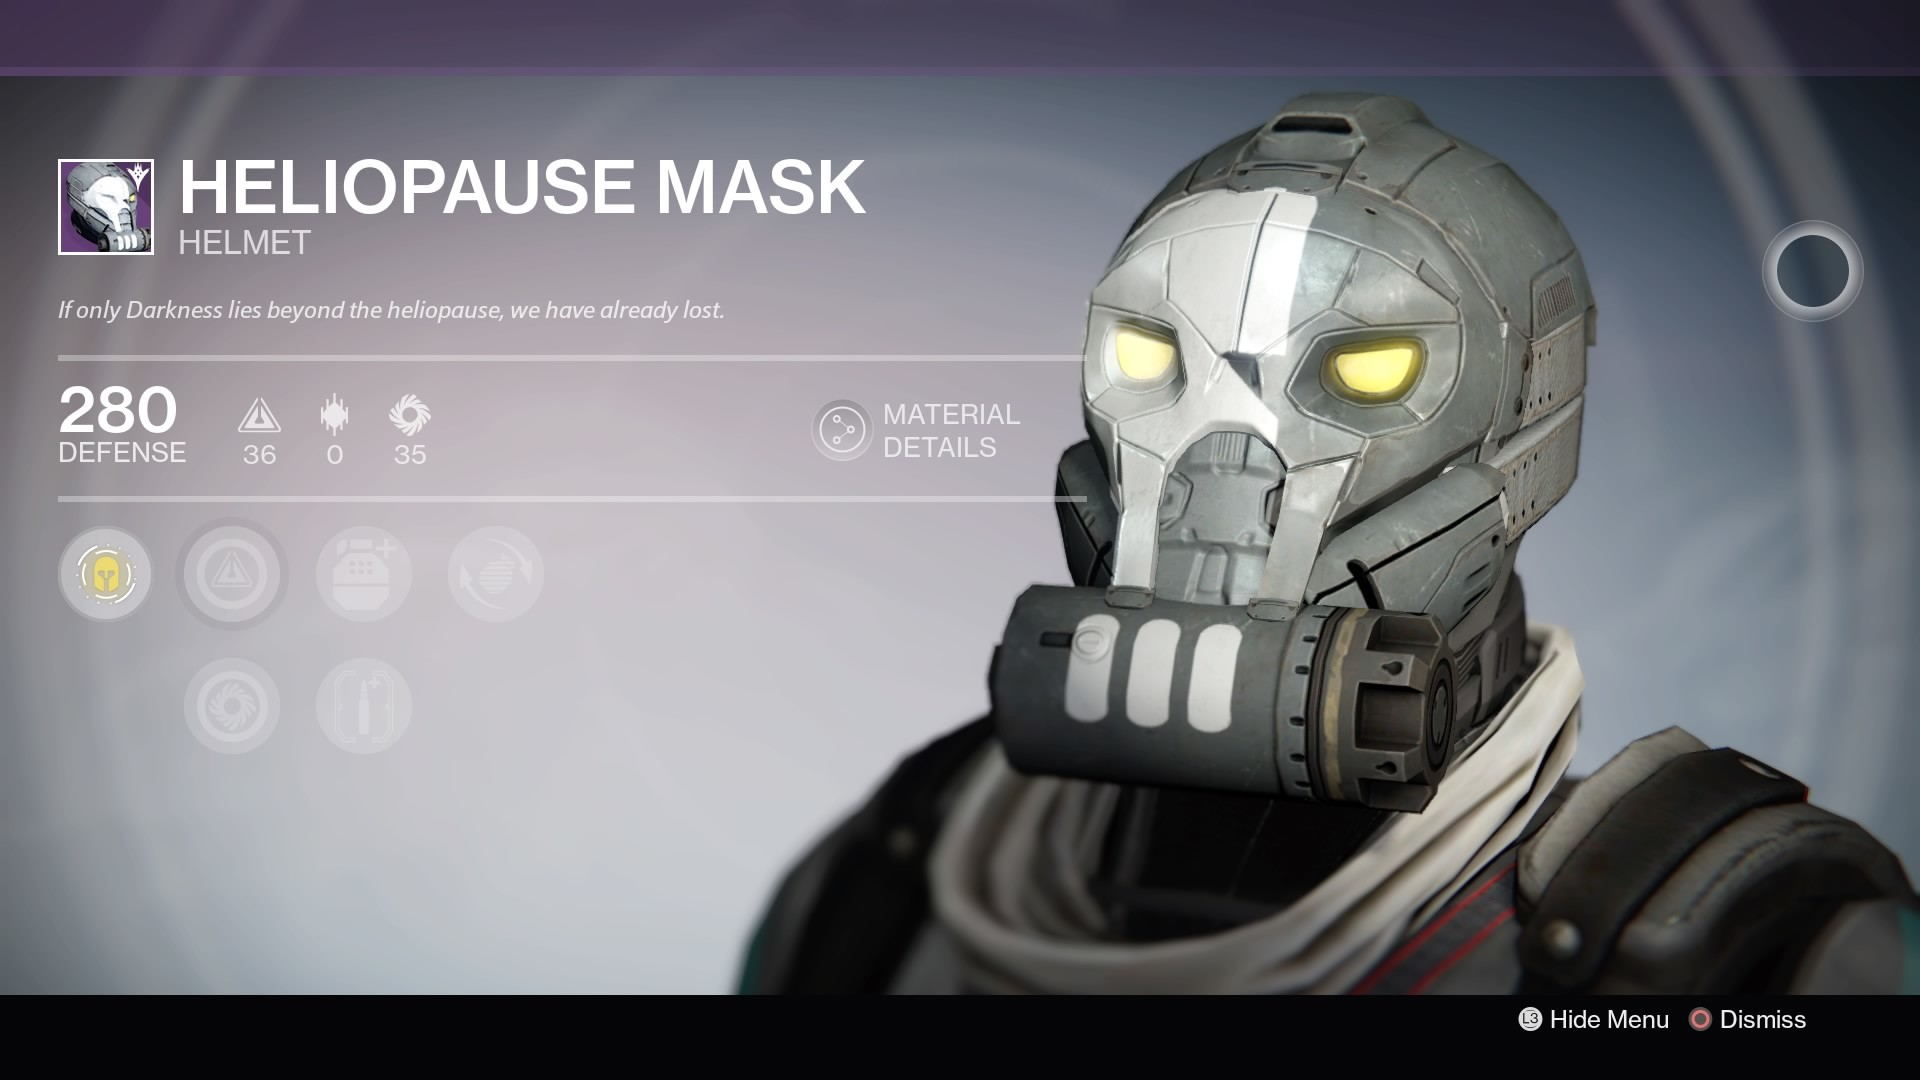 Heliopause Mask